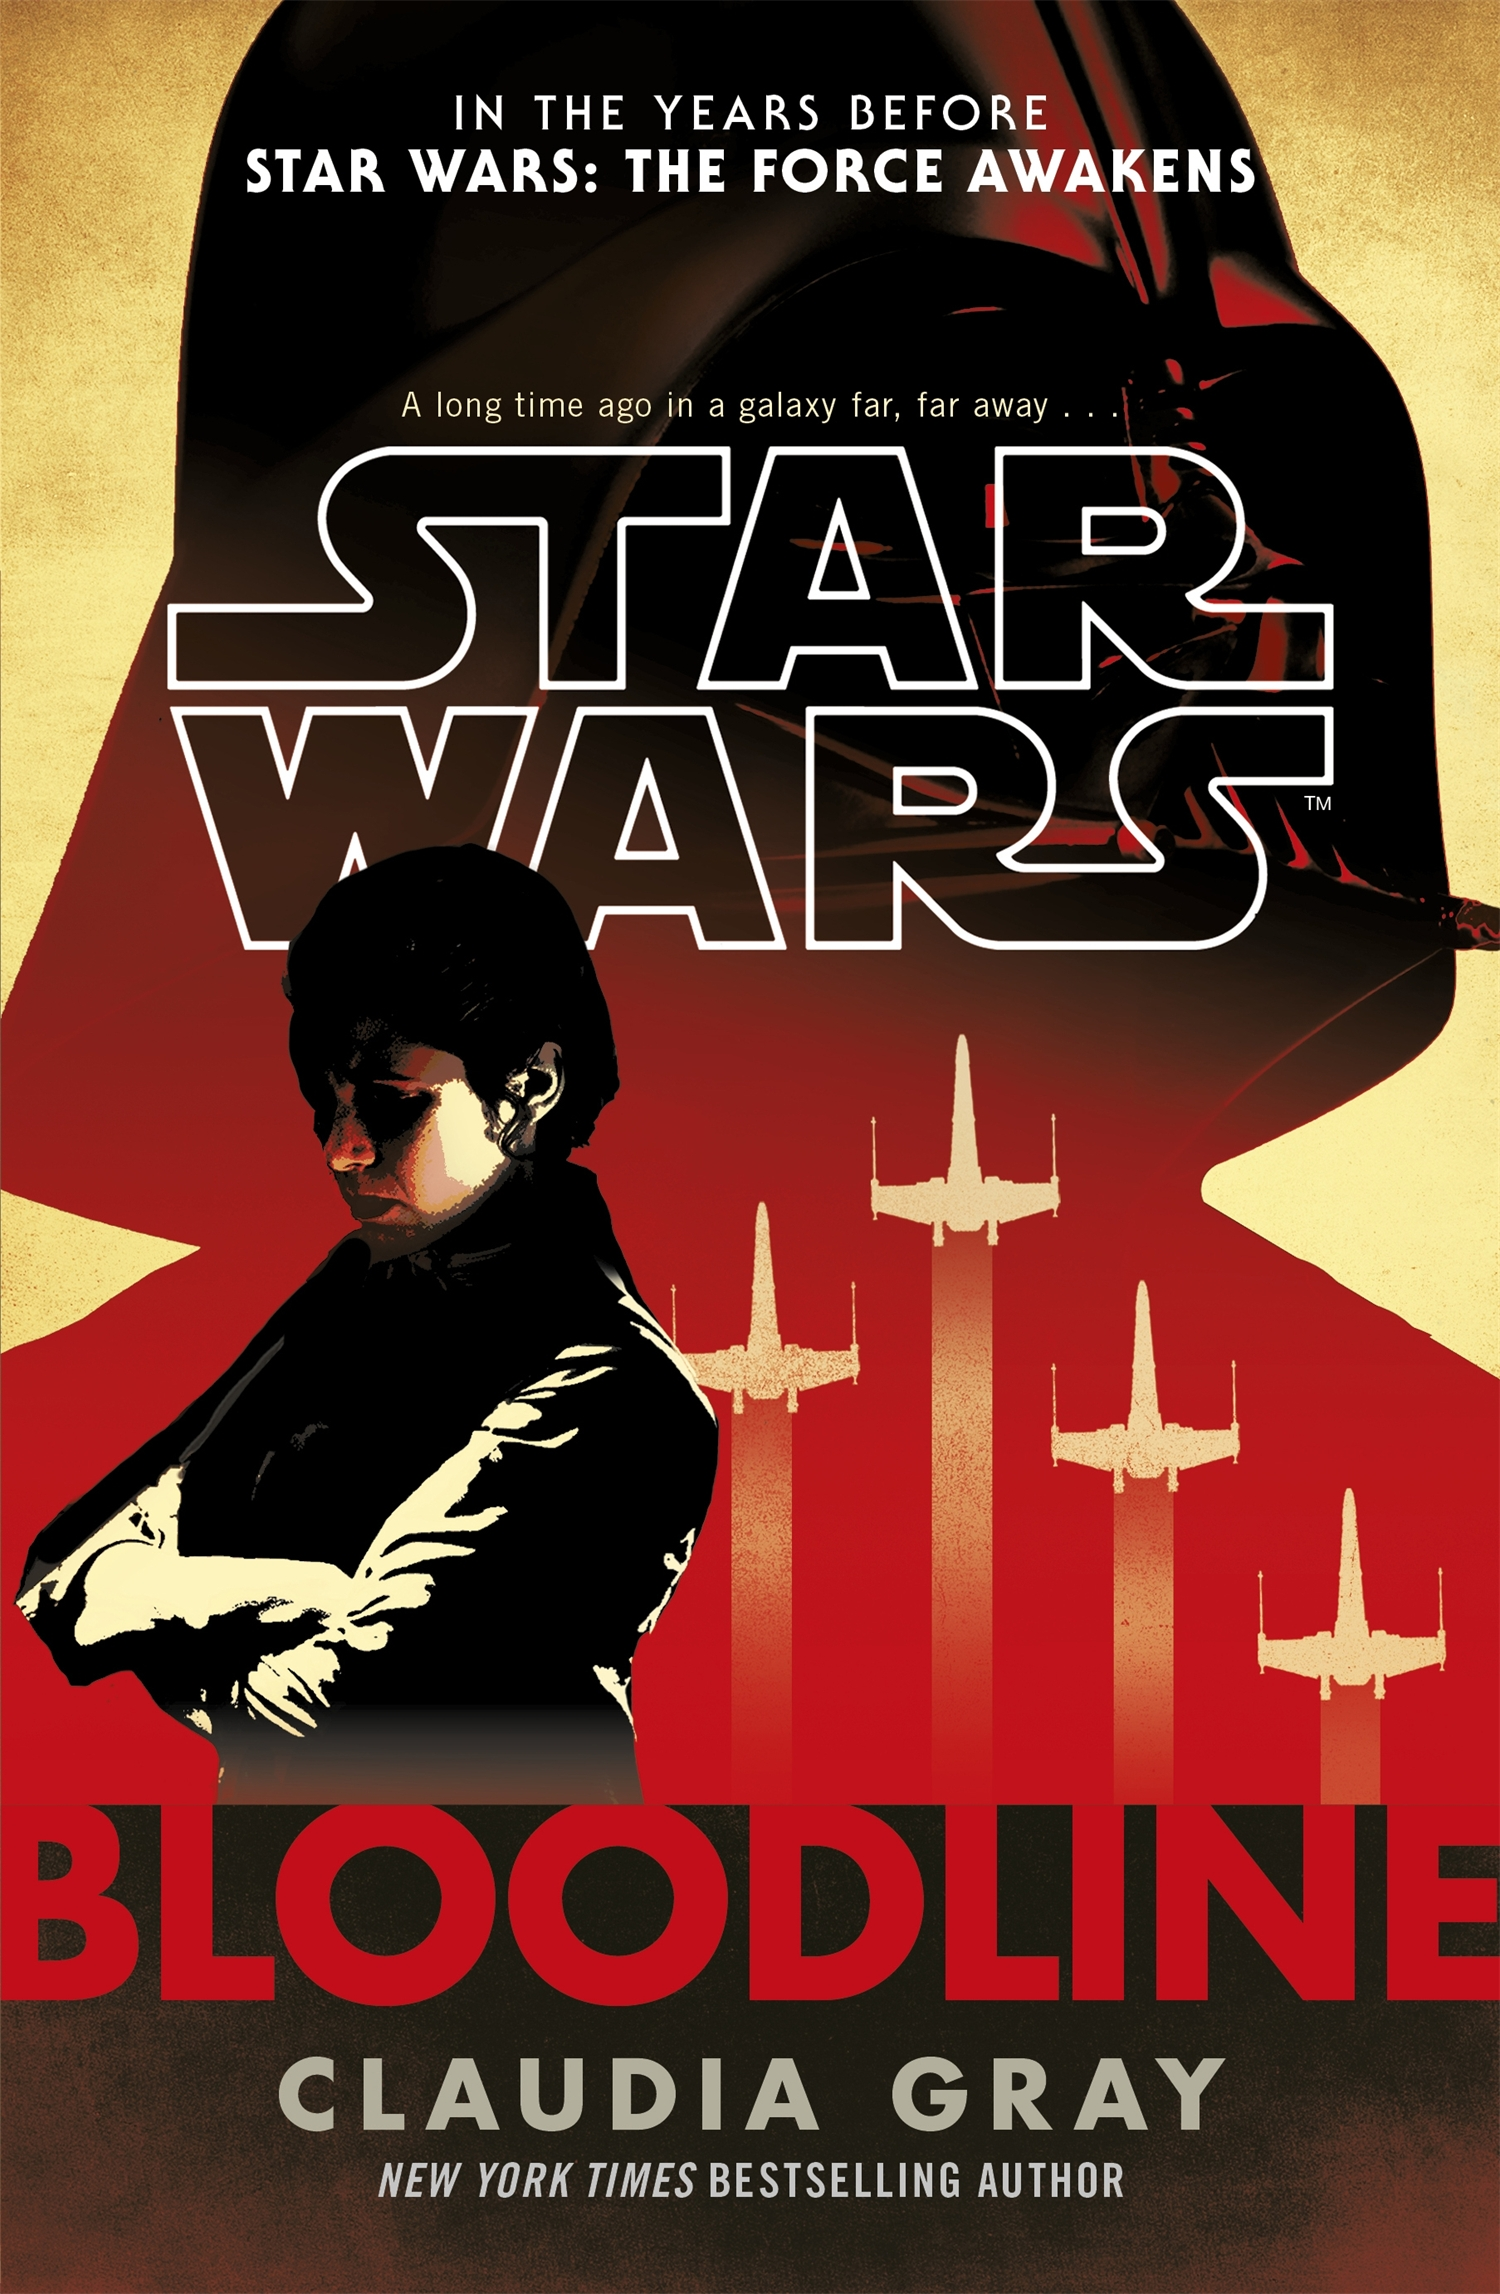 Bloodline by Claudia Gray